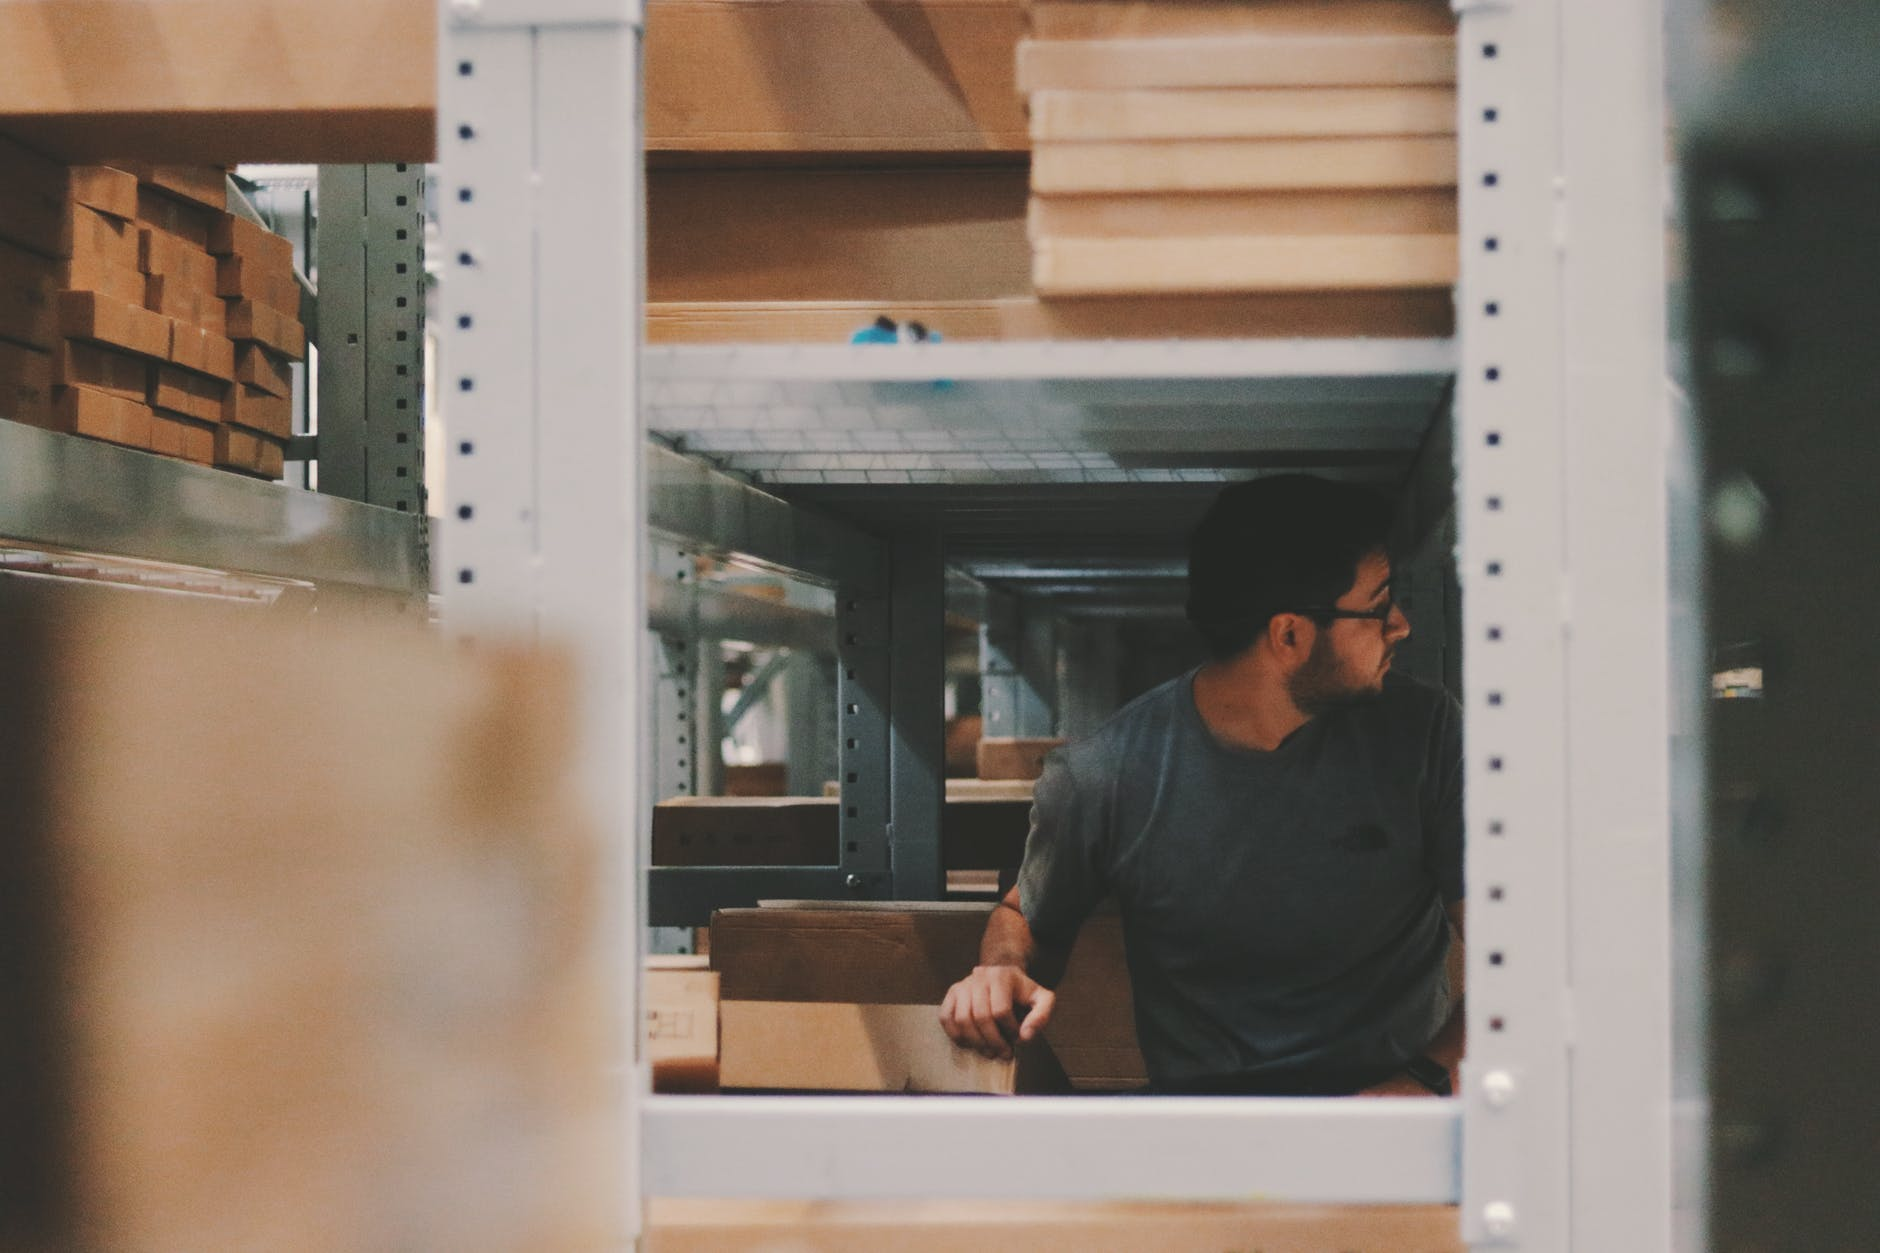 Man in warehouse shelves stocking with inventory